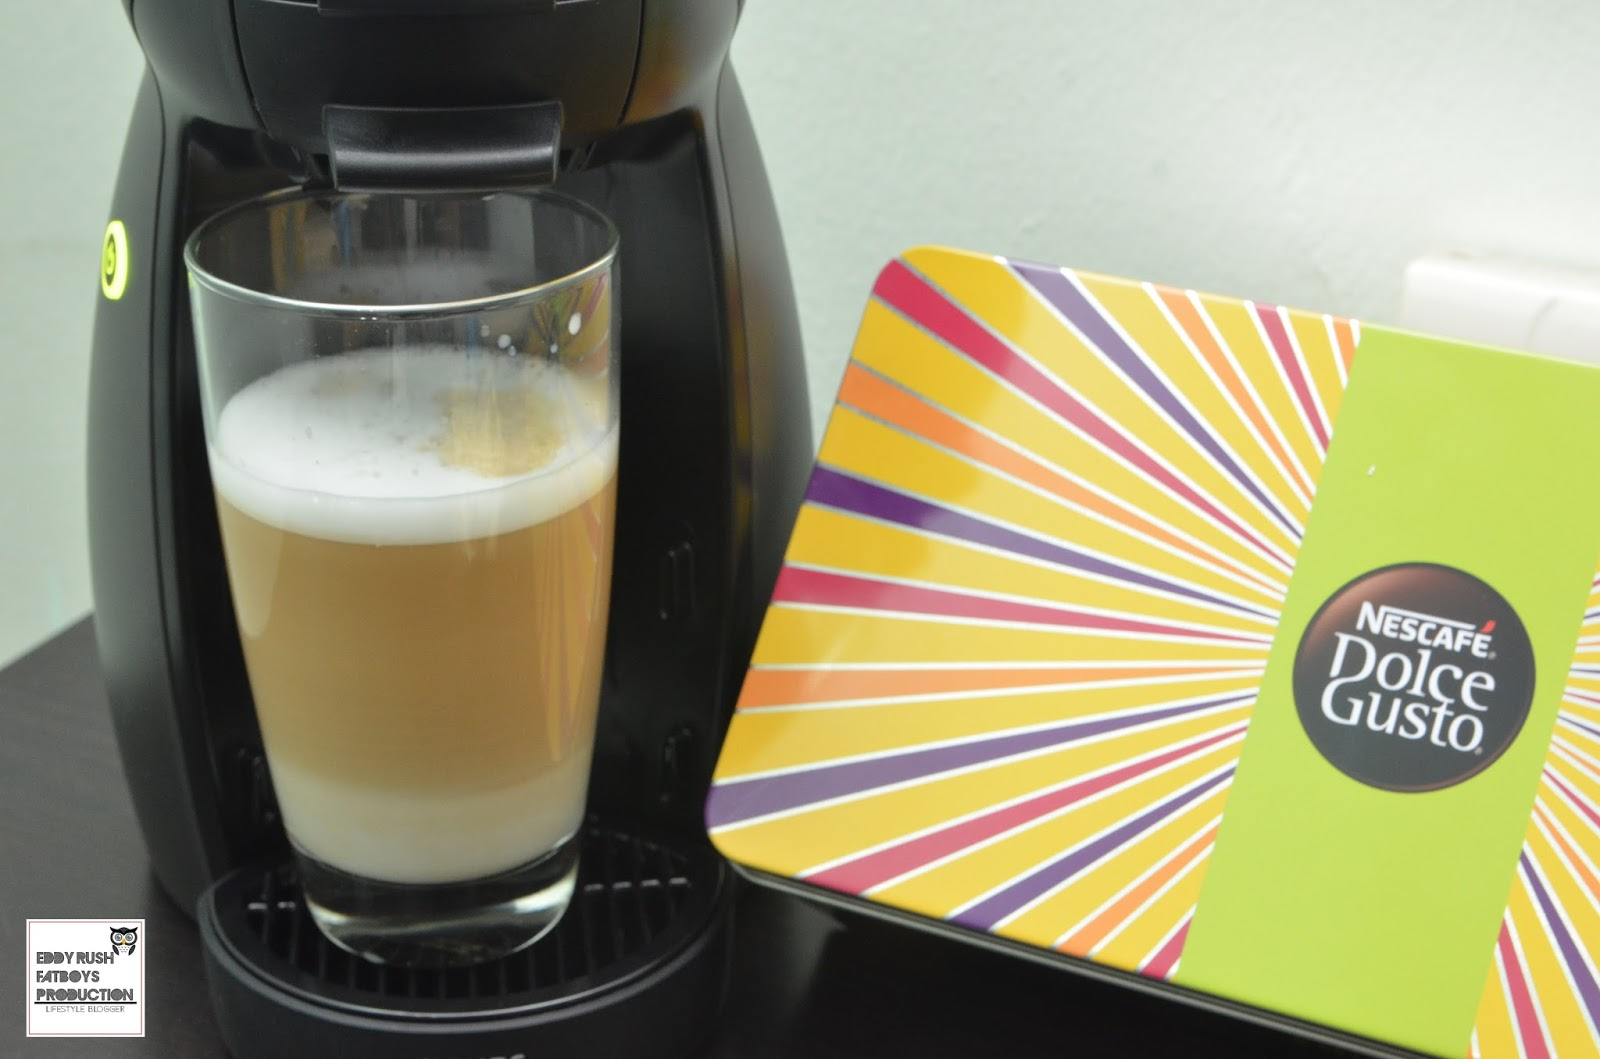 nescafe dolce gusto piccolo malaysia review. Black Bedroom Furniture Sets. Home Design Ideas